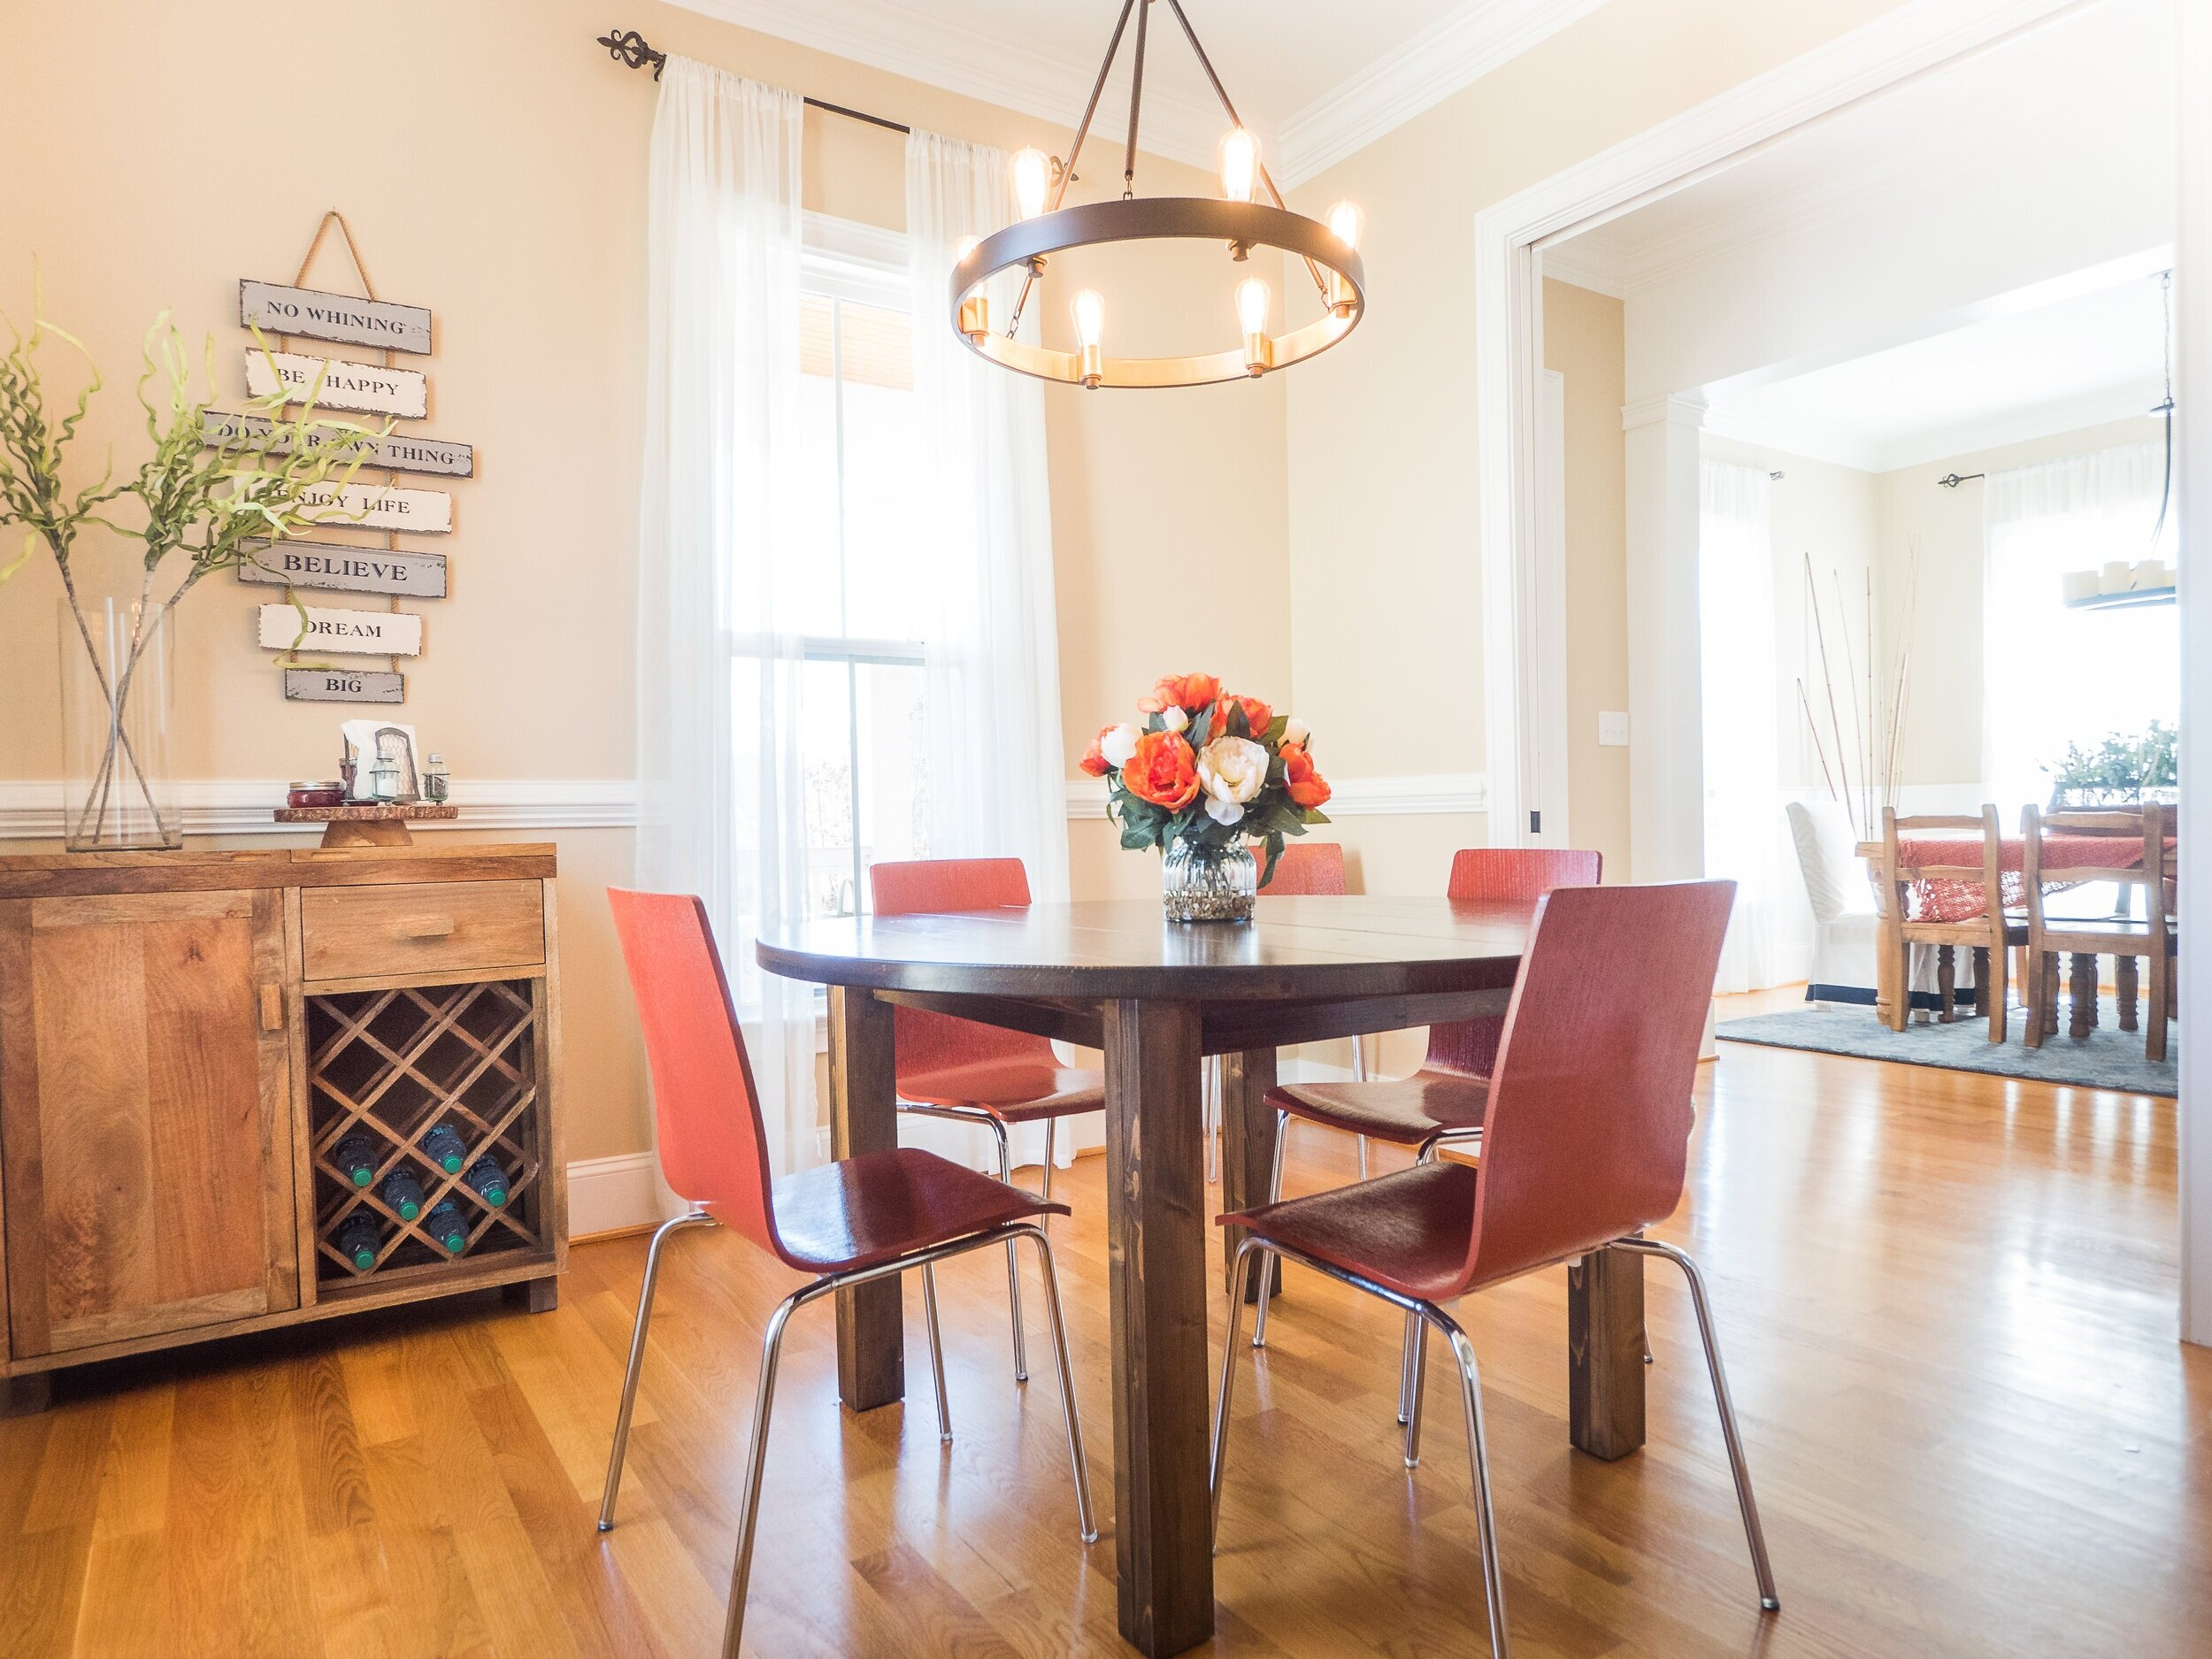 Existing wood dining chairs reused and custom painted to save money on new design.